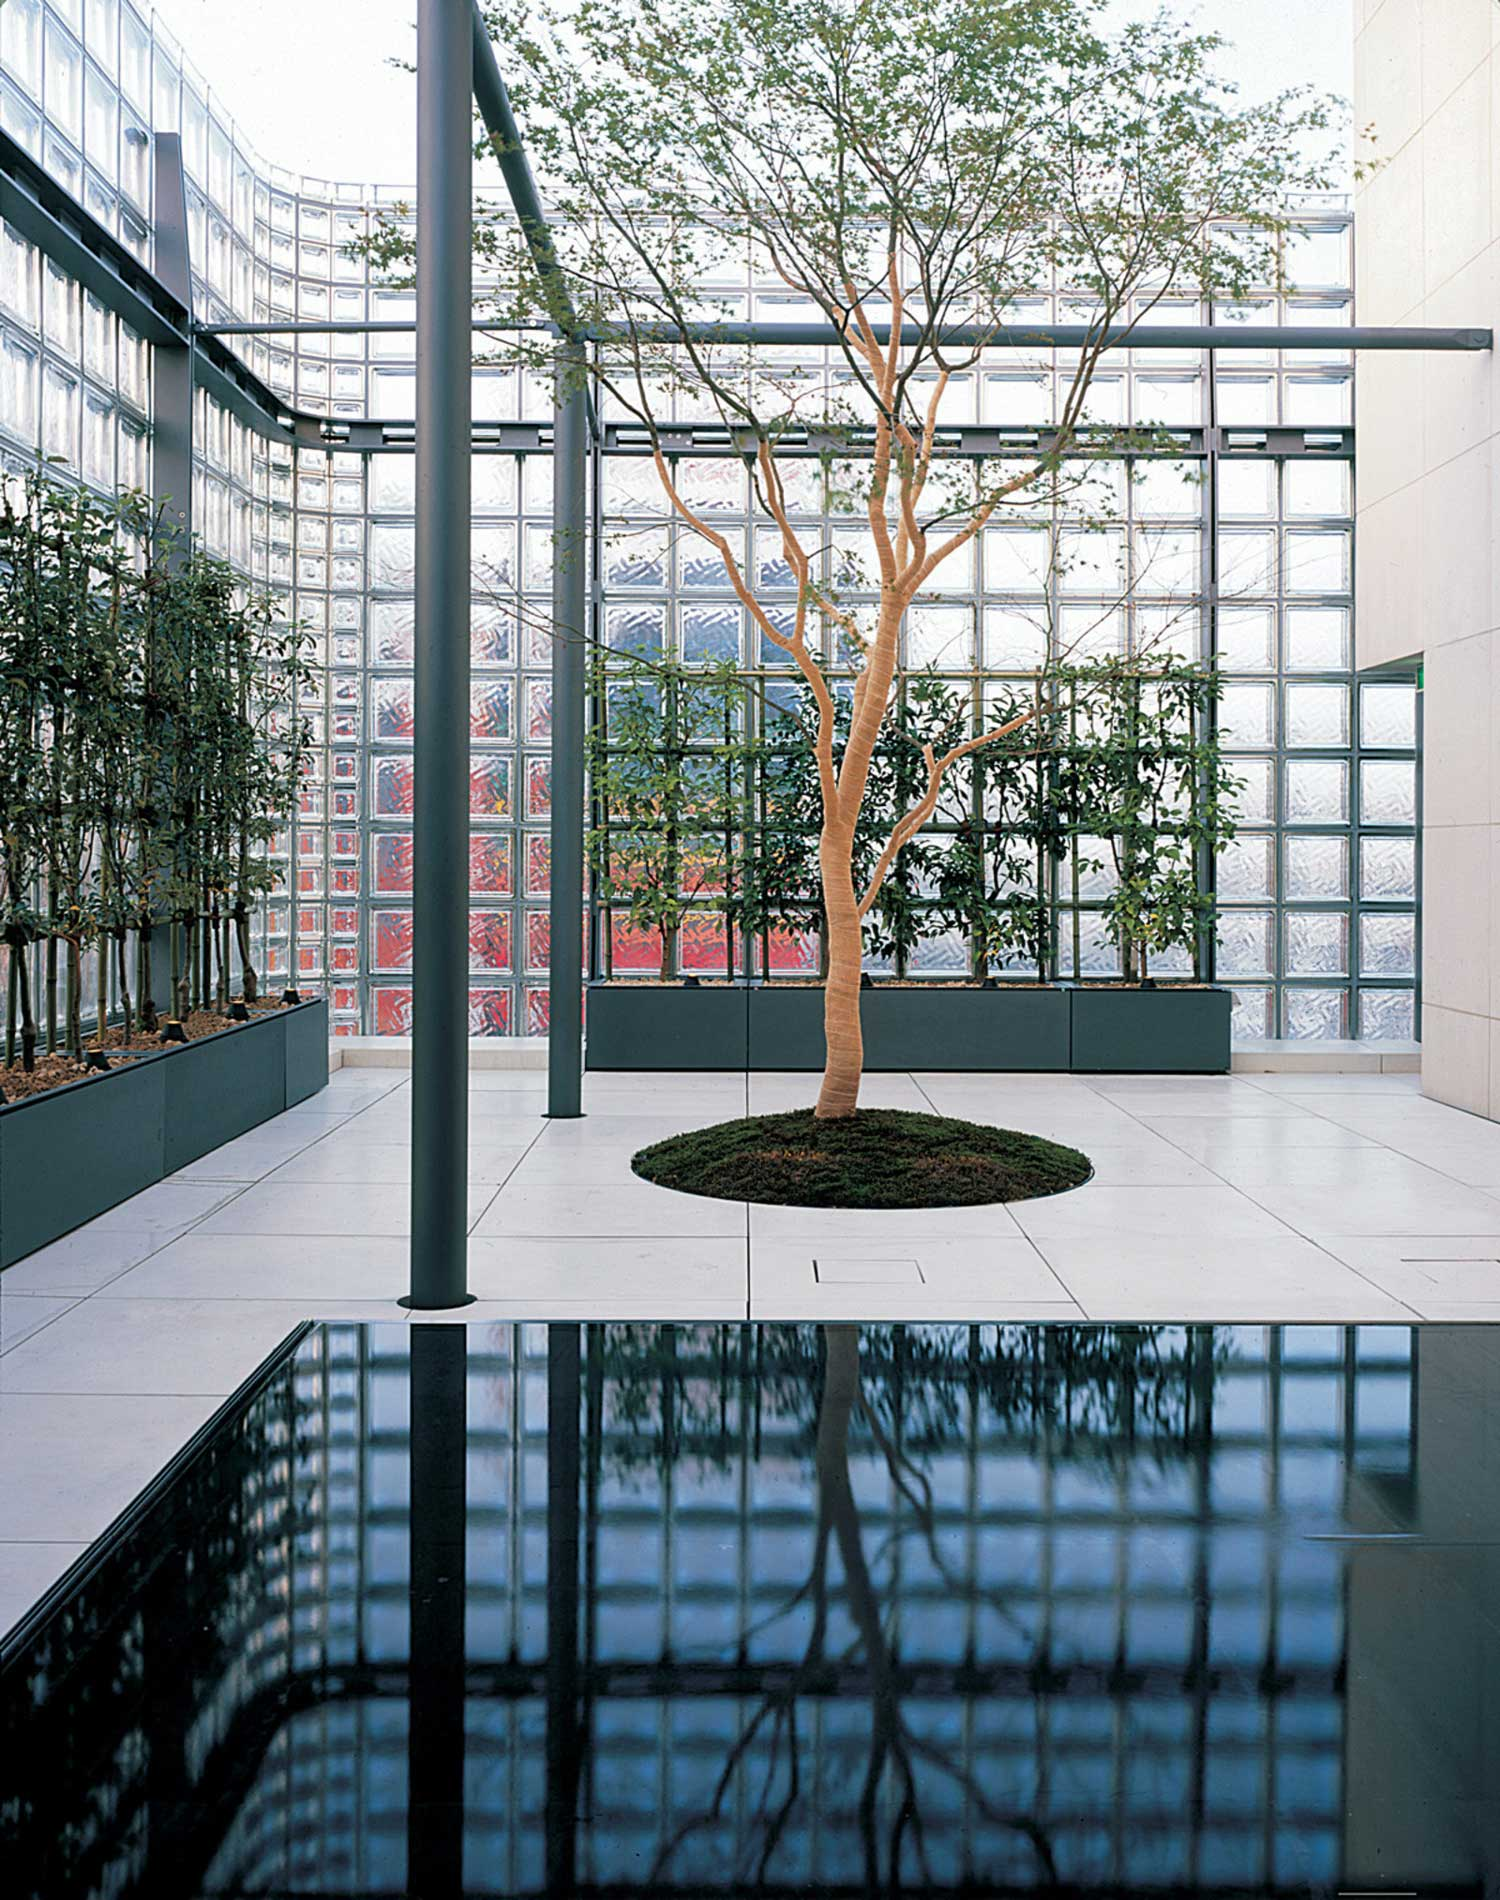 Maison Hermès in Tokyo, Japan by Renzo Piano (1998-2006) | Yellowtrace